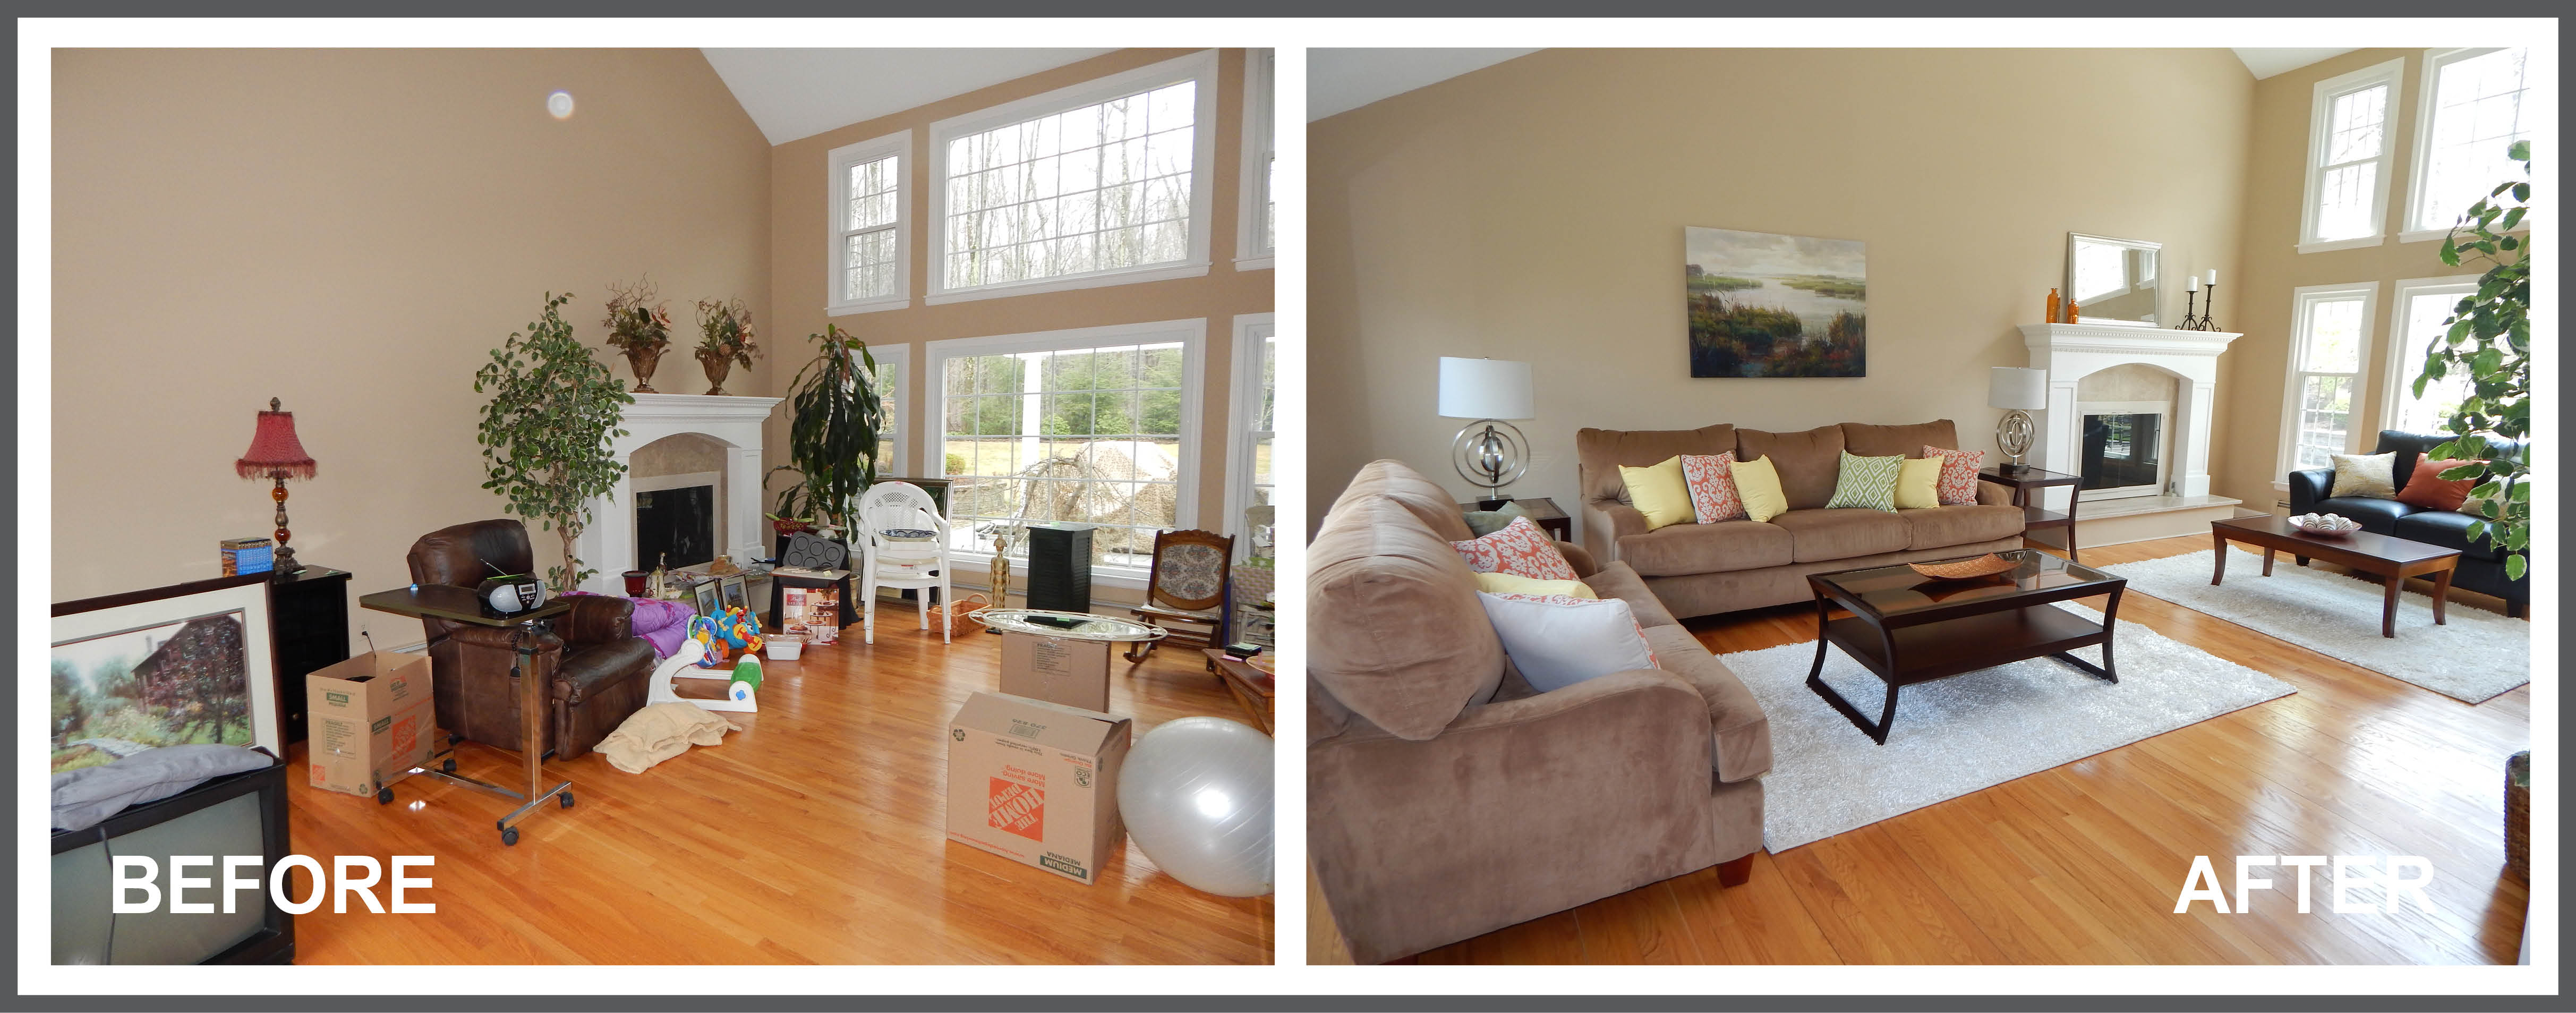 Differences between home staging and interior decorating for Difference between living room and family room